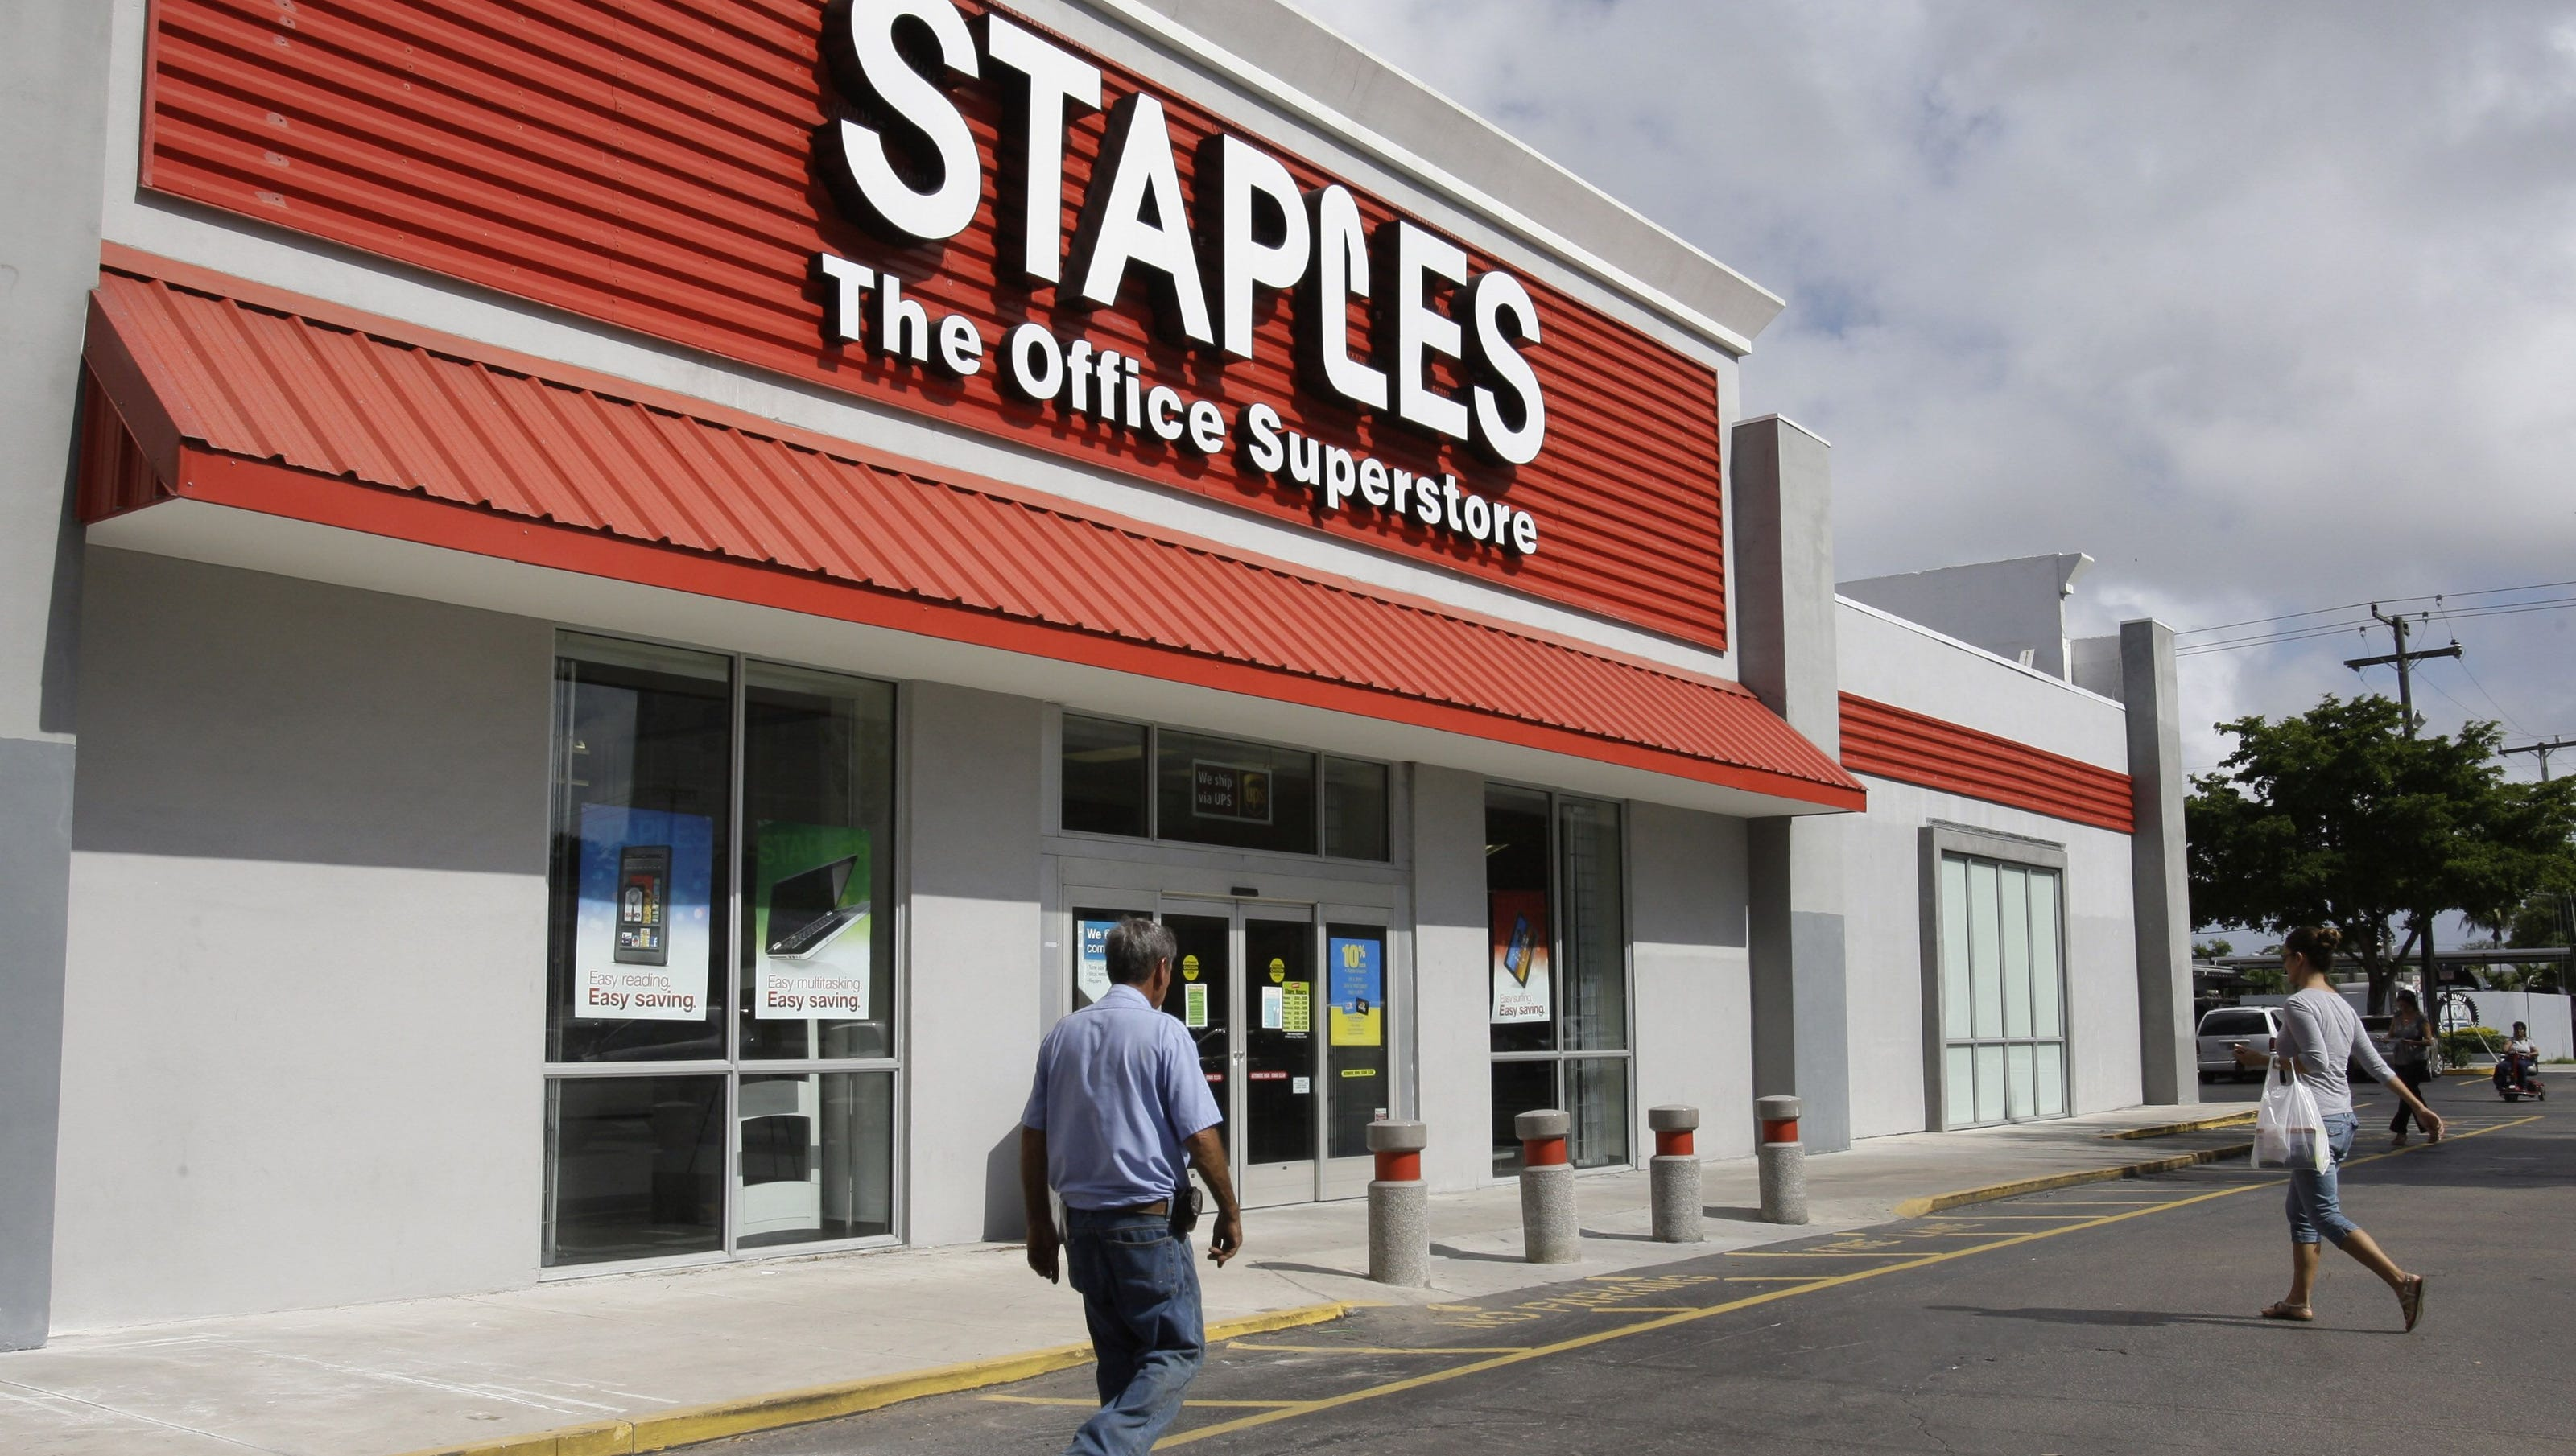 Staples proposes buying rival Office Depot for $2.1 billion after past merger attempts were blocked – USA TODAY